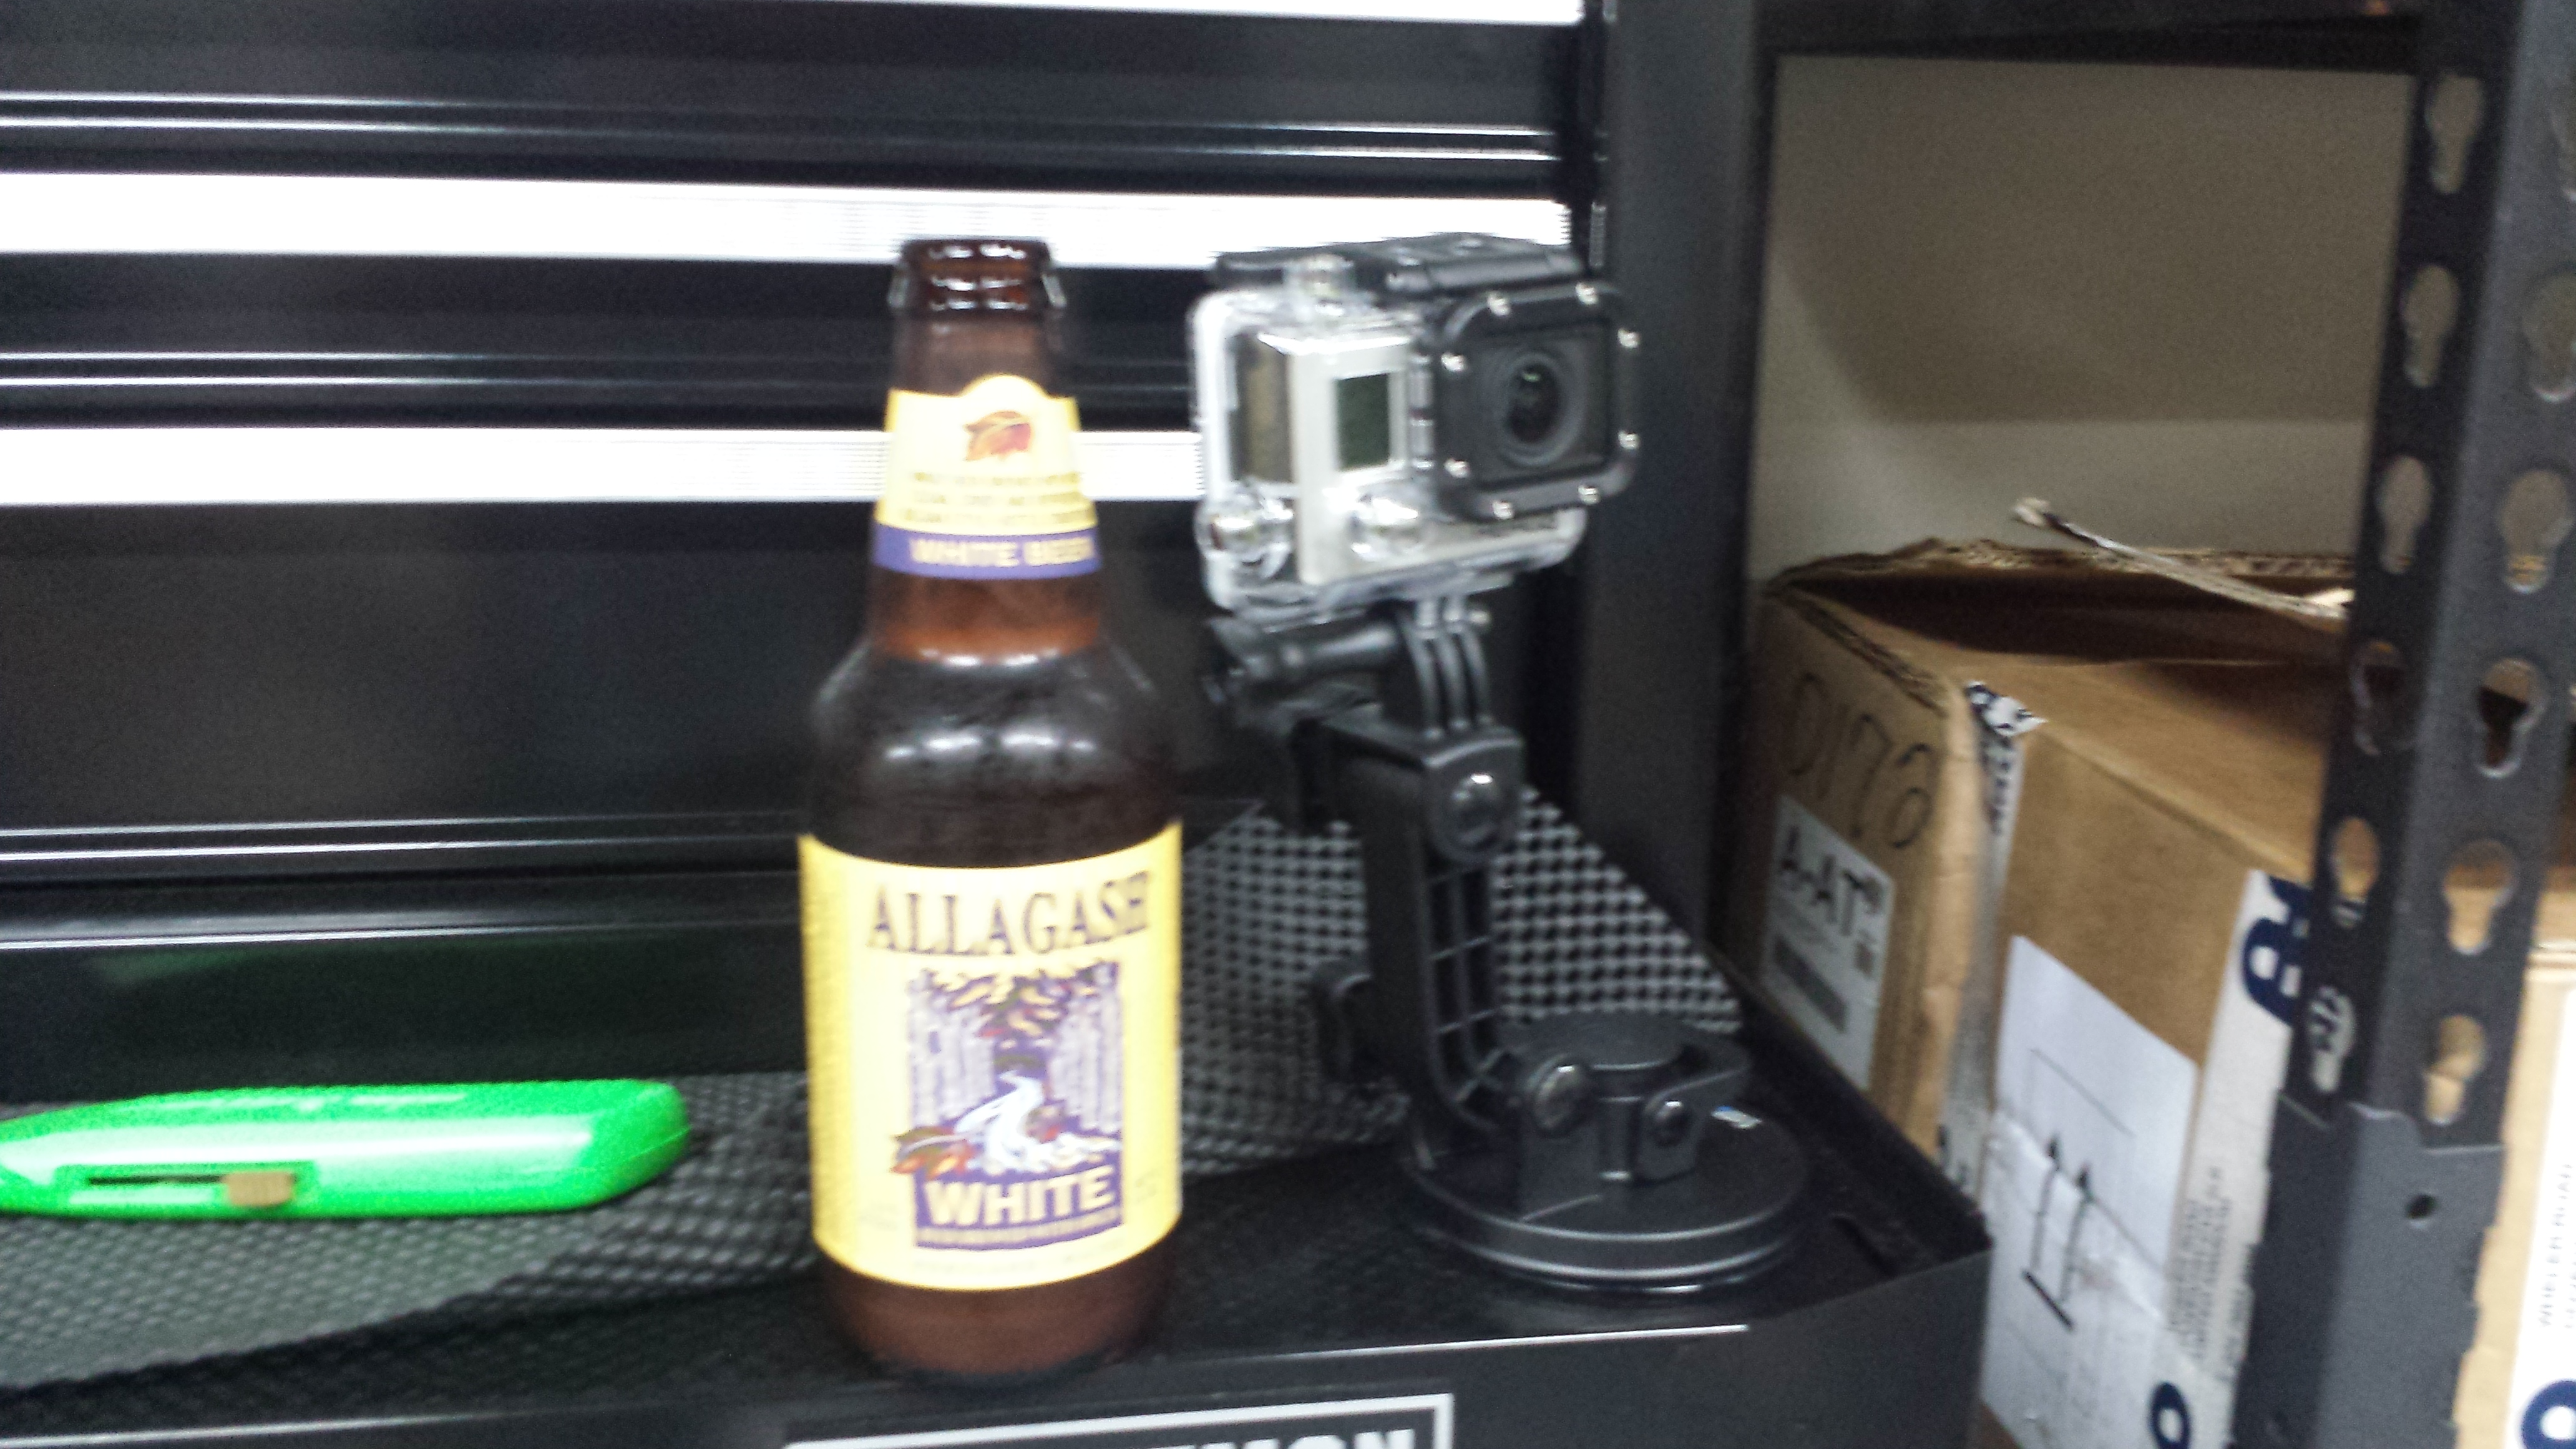 Beer and GoPro